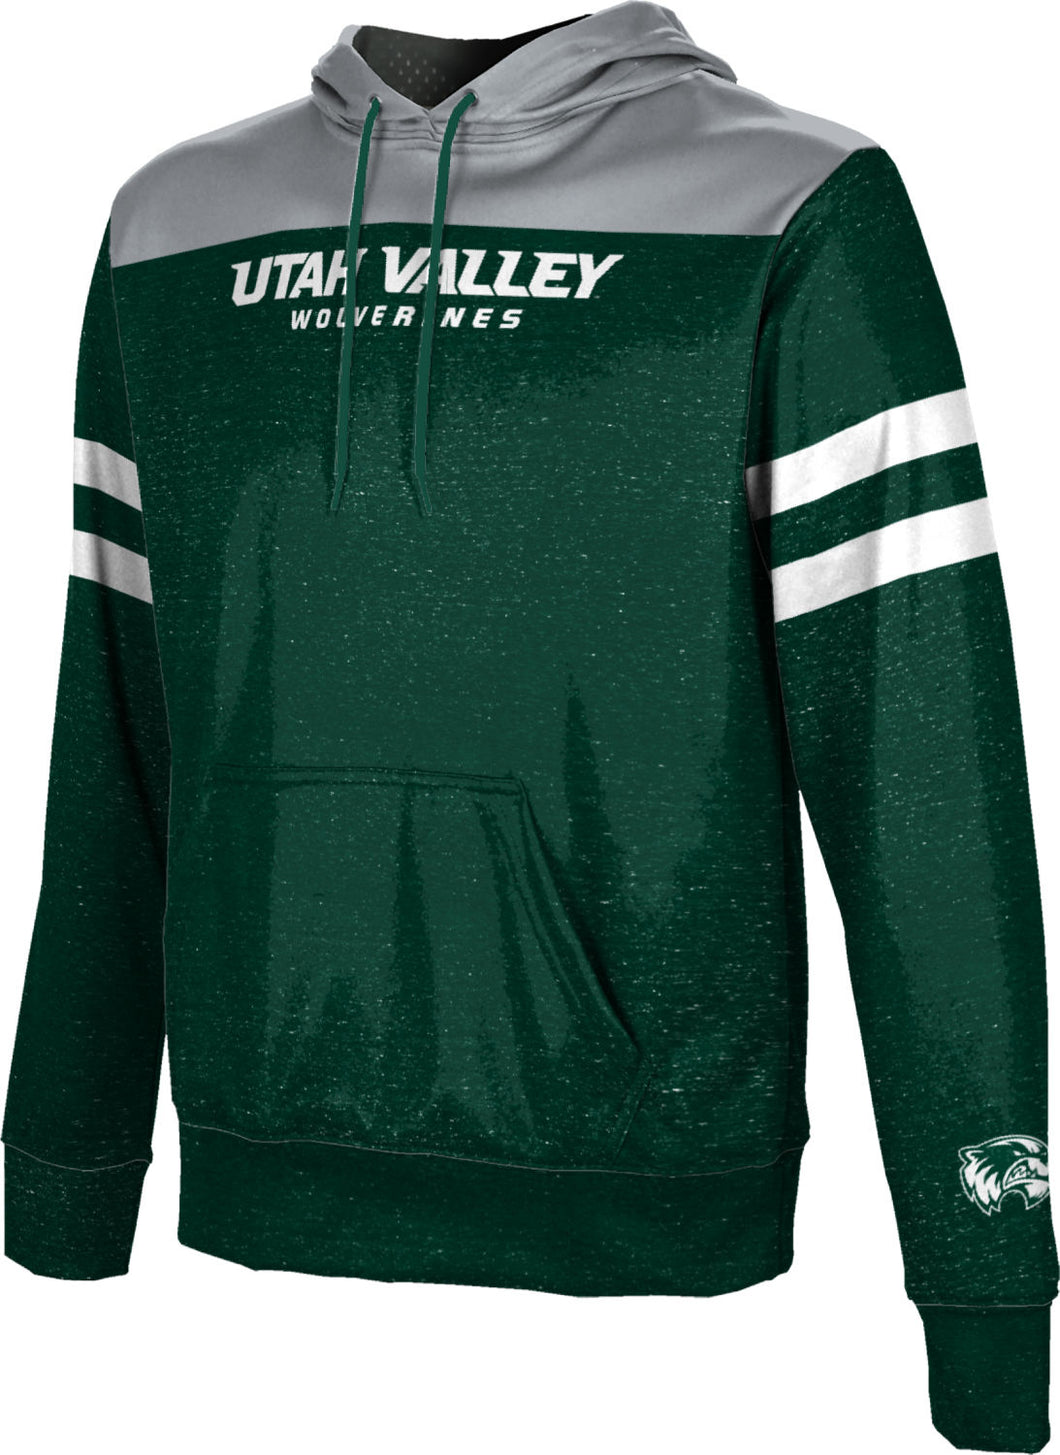 Utah Valley University: Men's Pullover Hoodie - Game Day